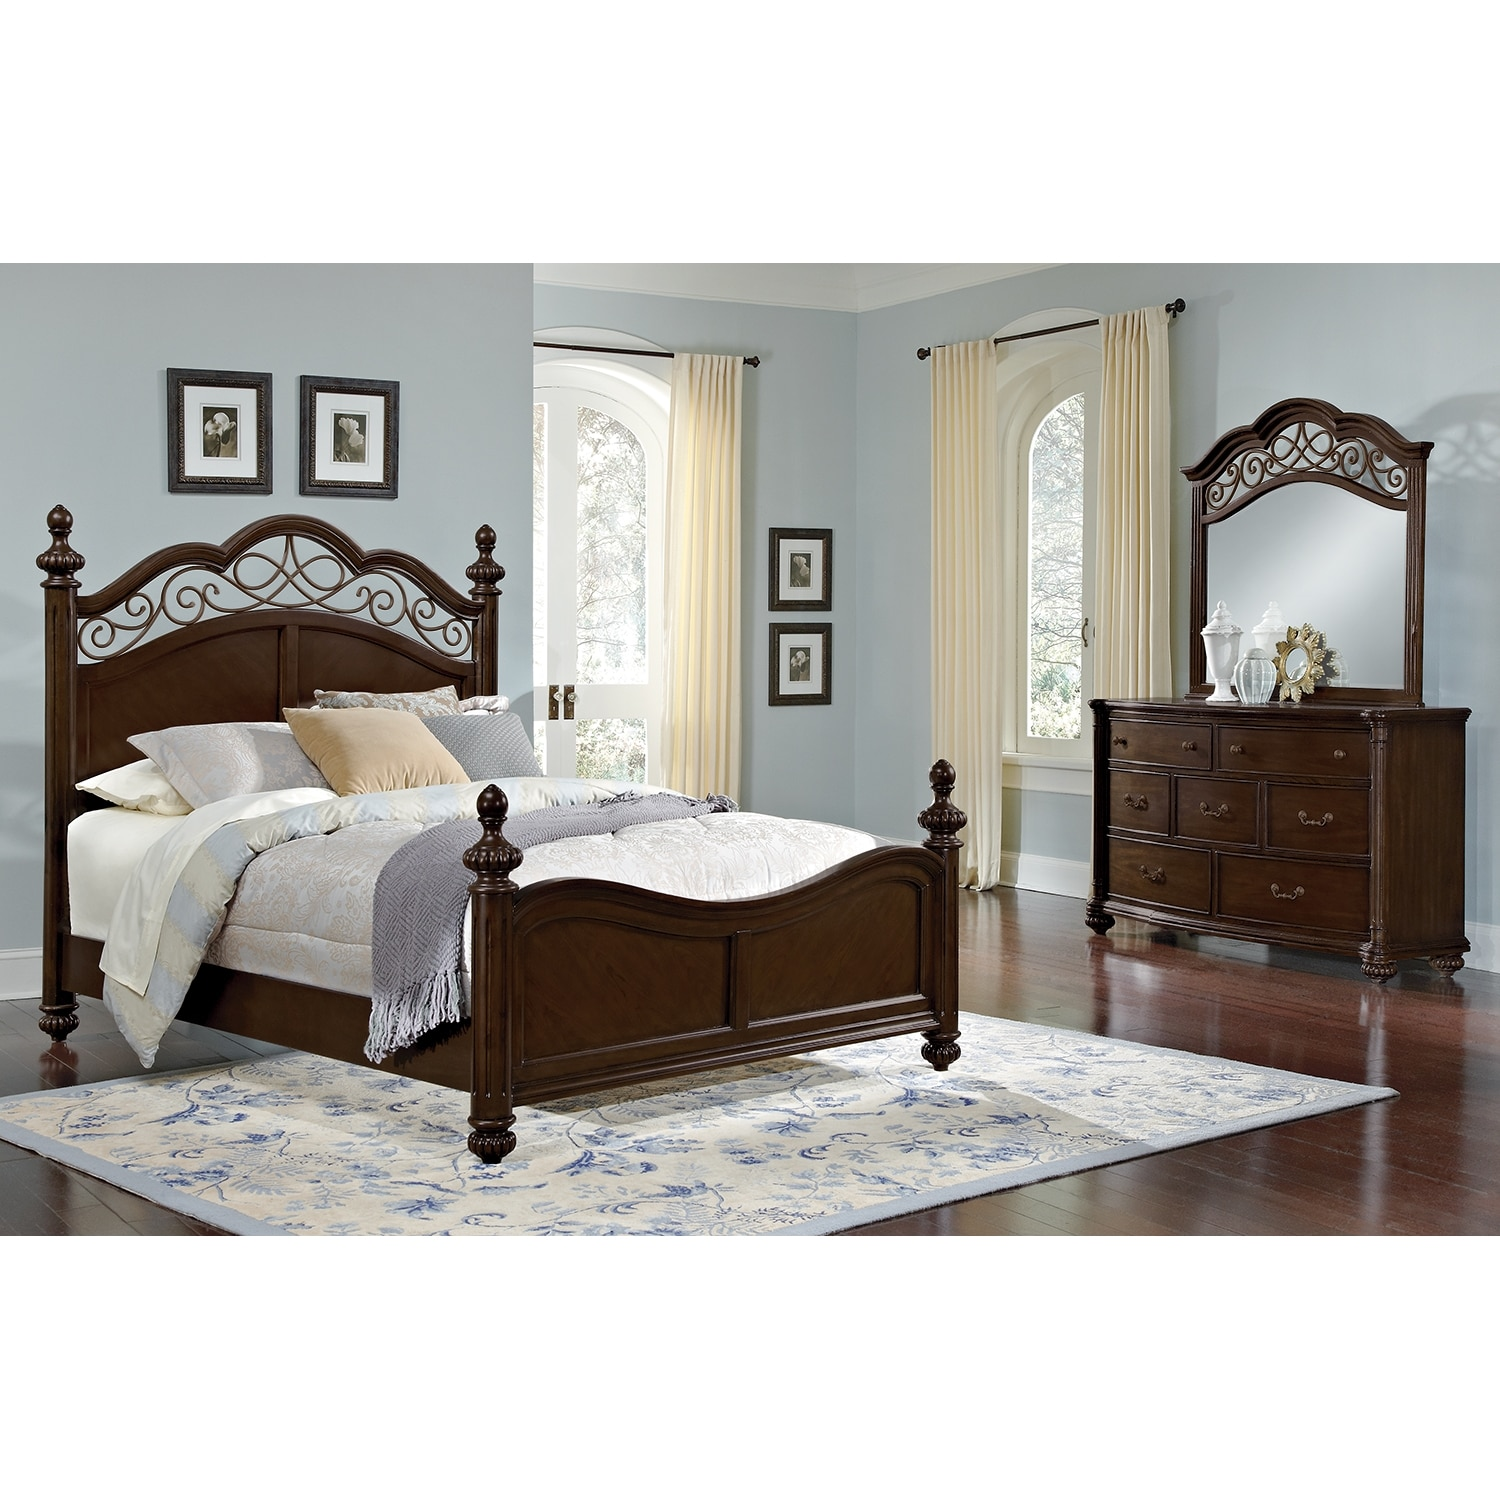 Bedroom Furniture - Derbyshire 5 Pc. Queen Bedroom